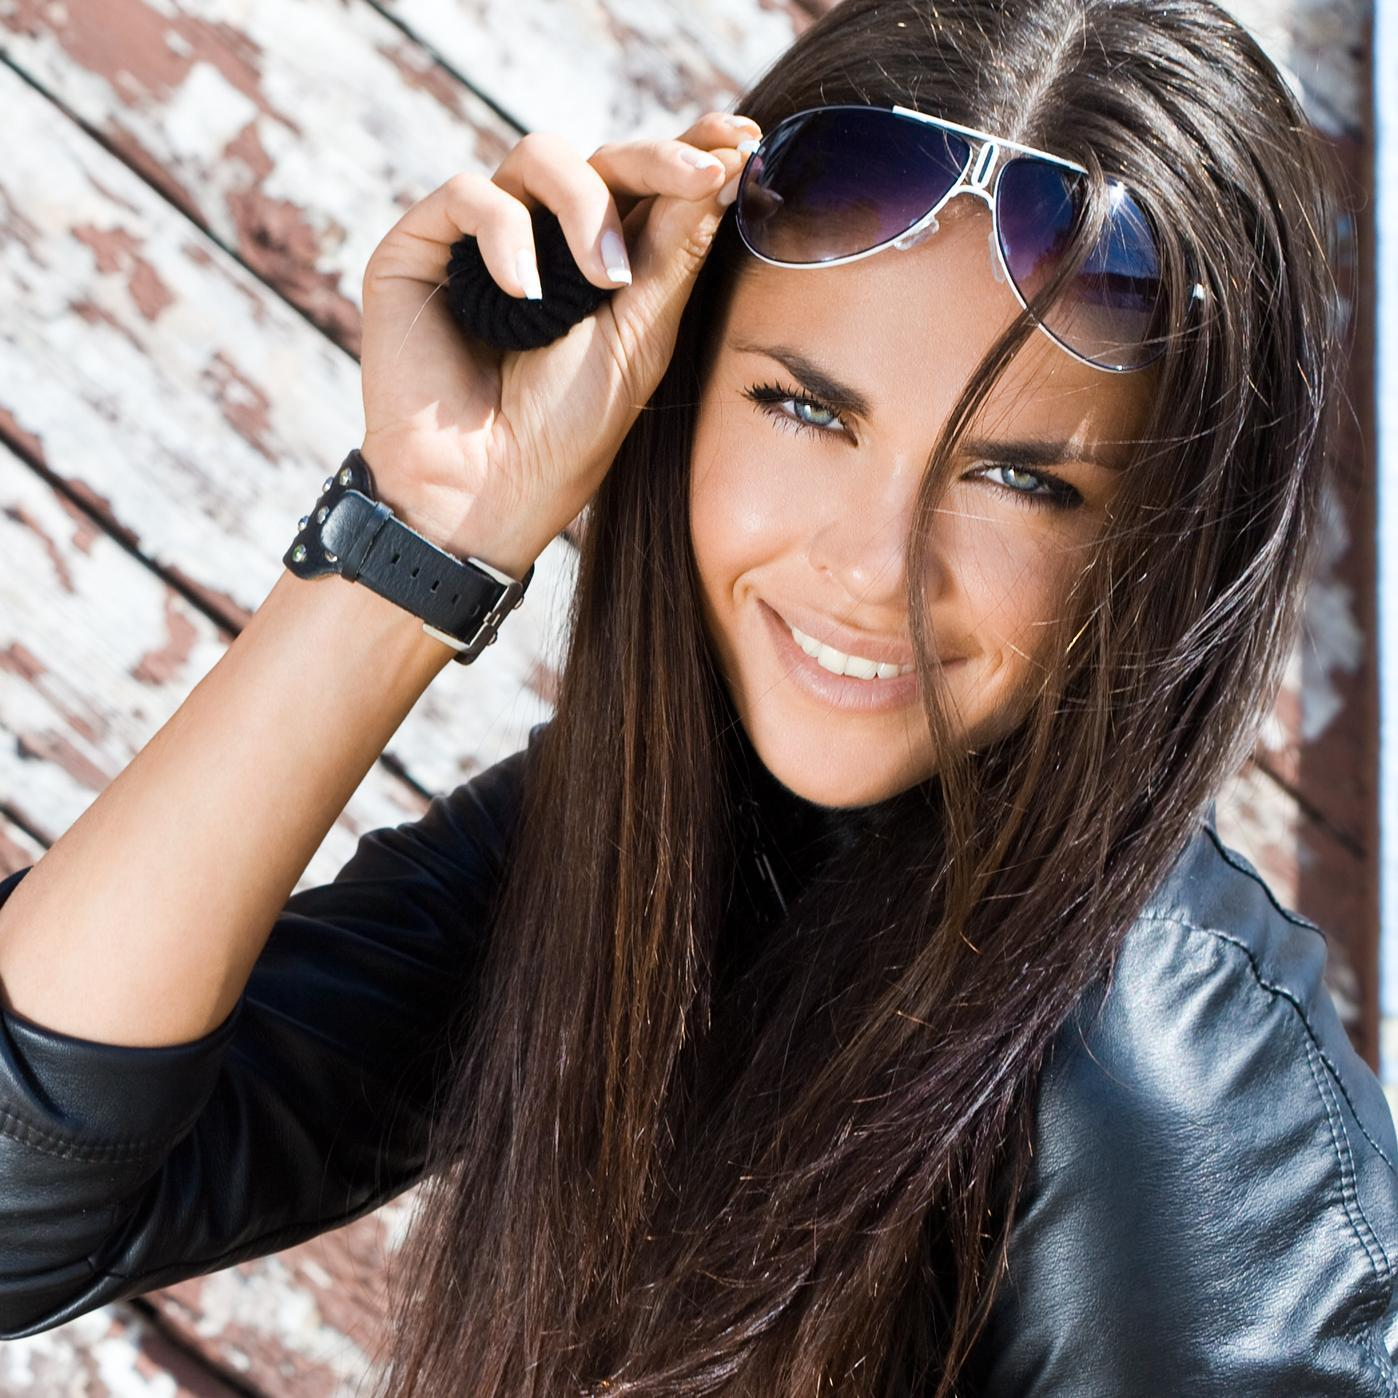 nahunta latino personals The latest tweets from amolatina (@amolatina) premium #internationaldating online connecting latin singles with western men visit   and find your #romance today.